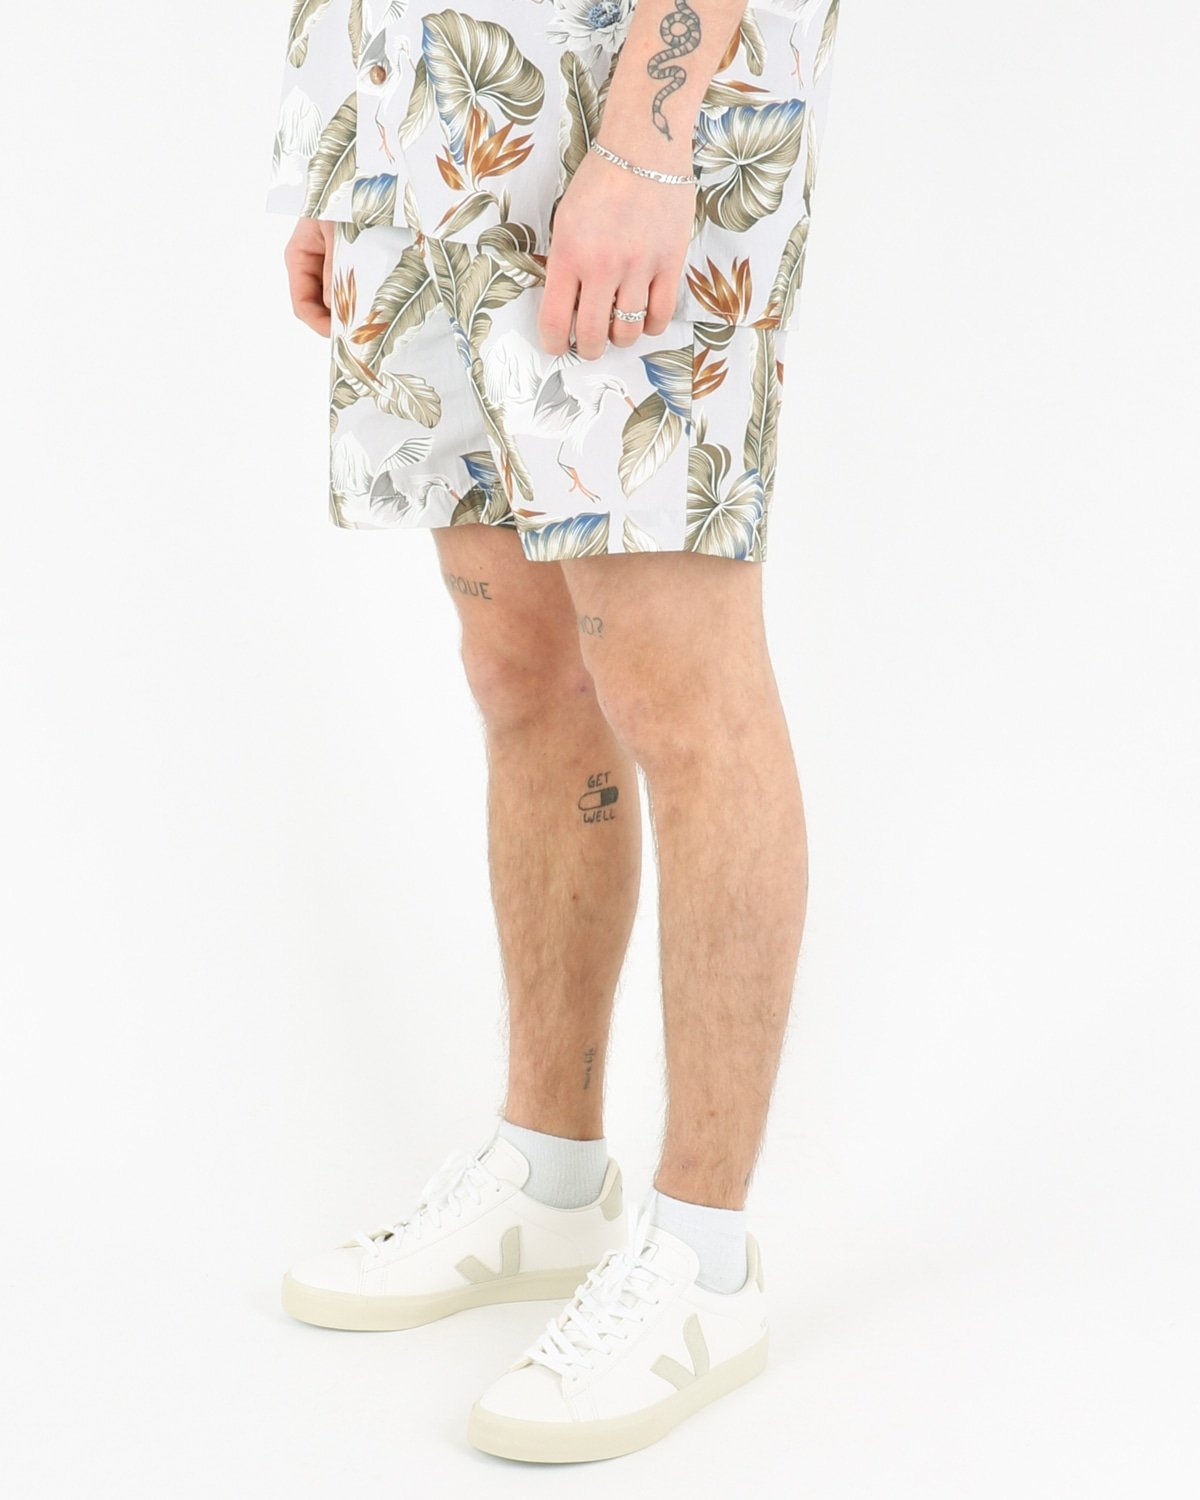 libertine libertine_front shorts_dusty flower_2_3